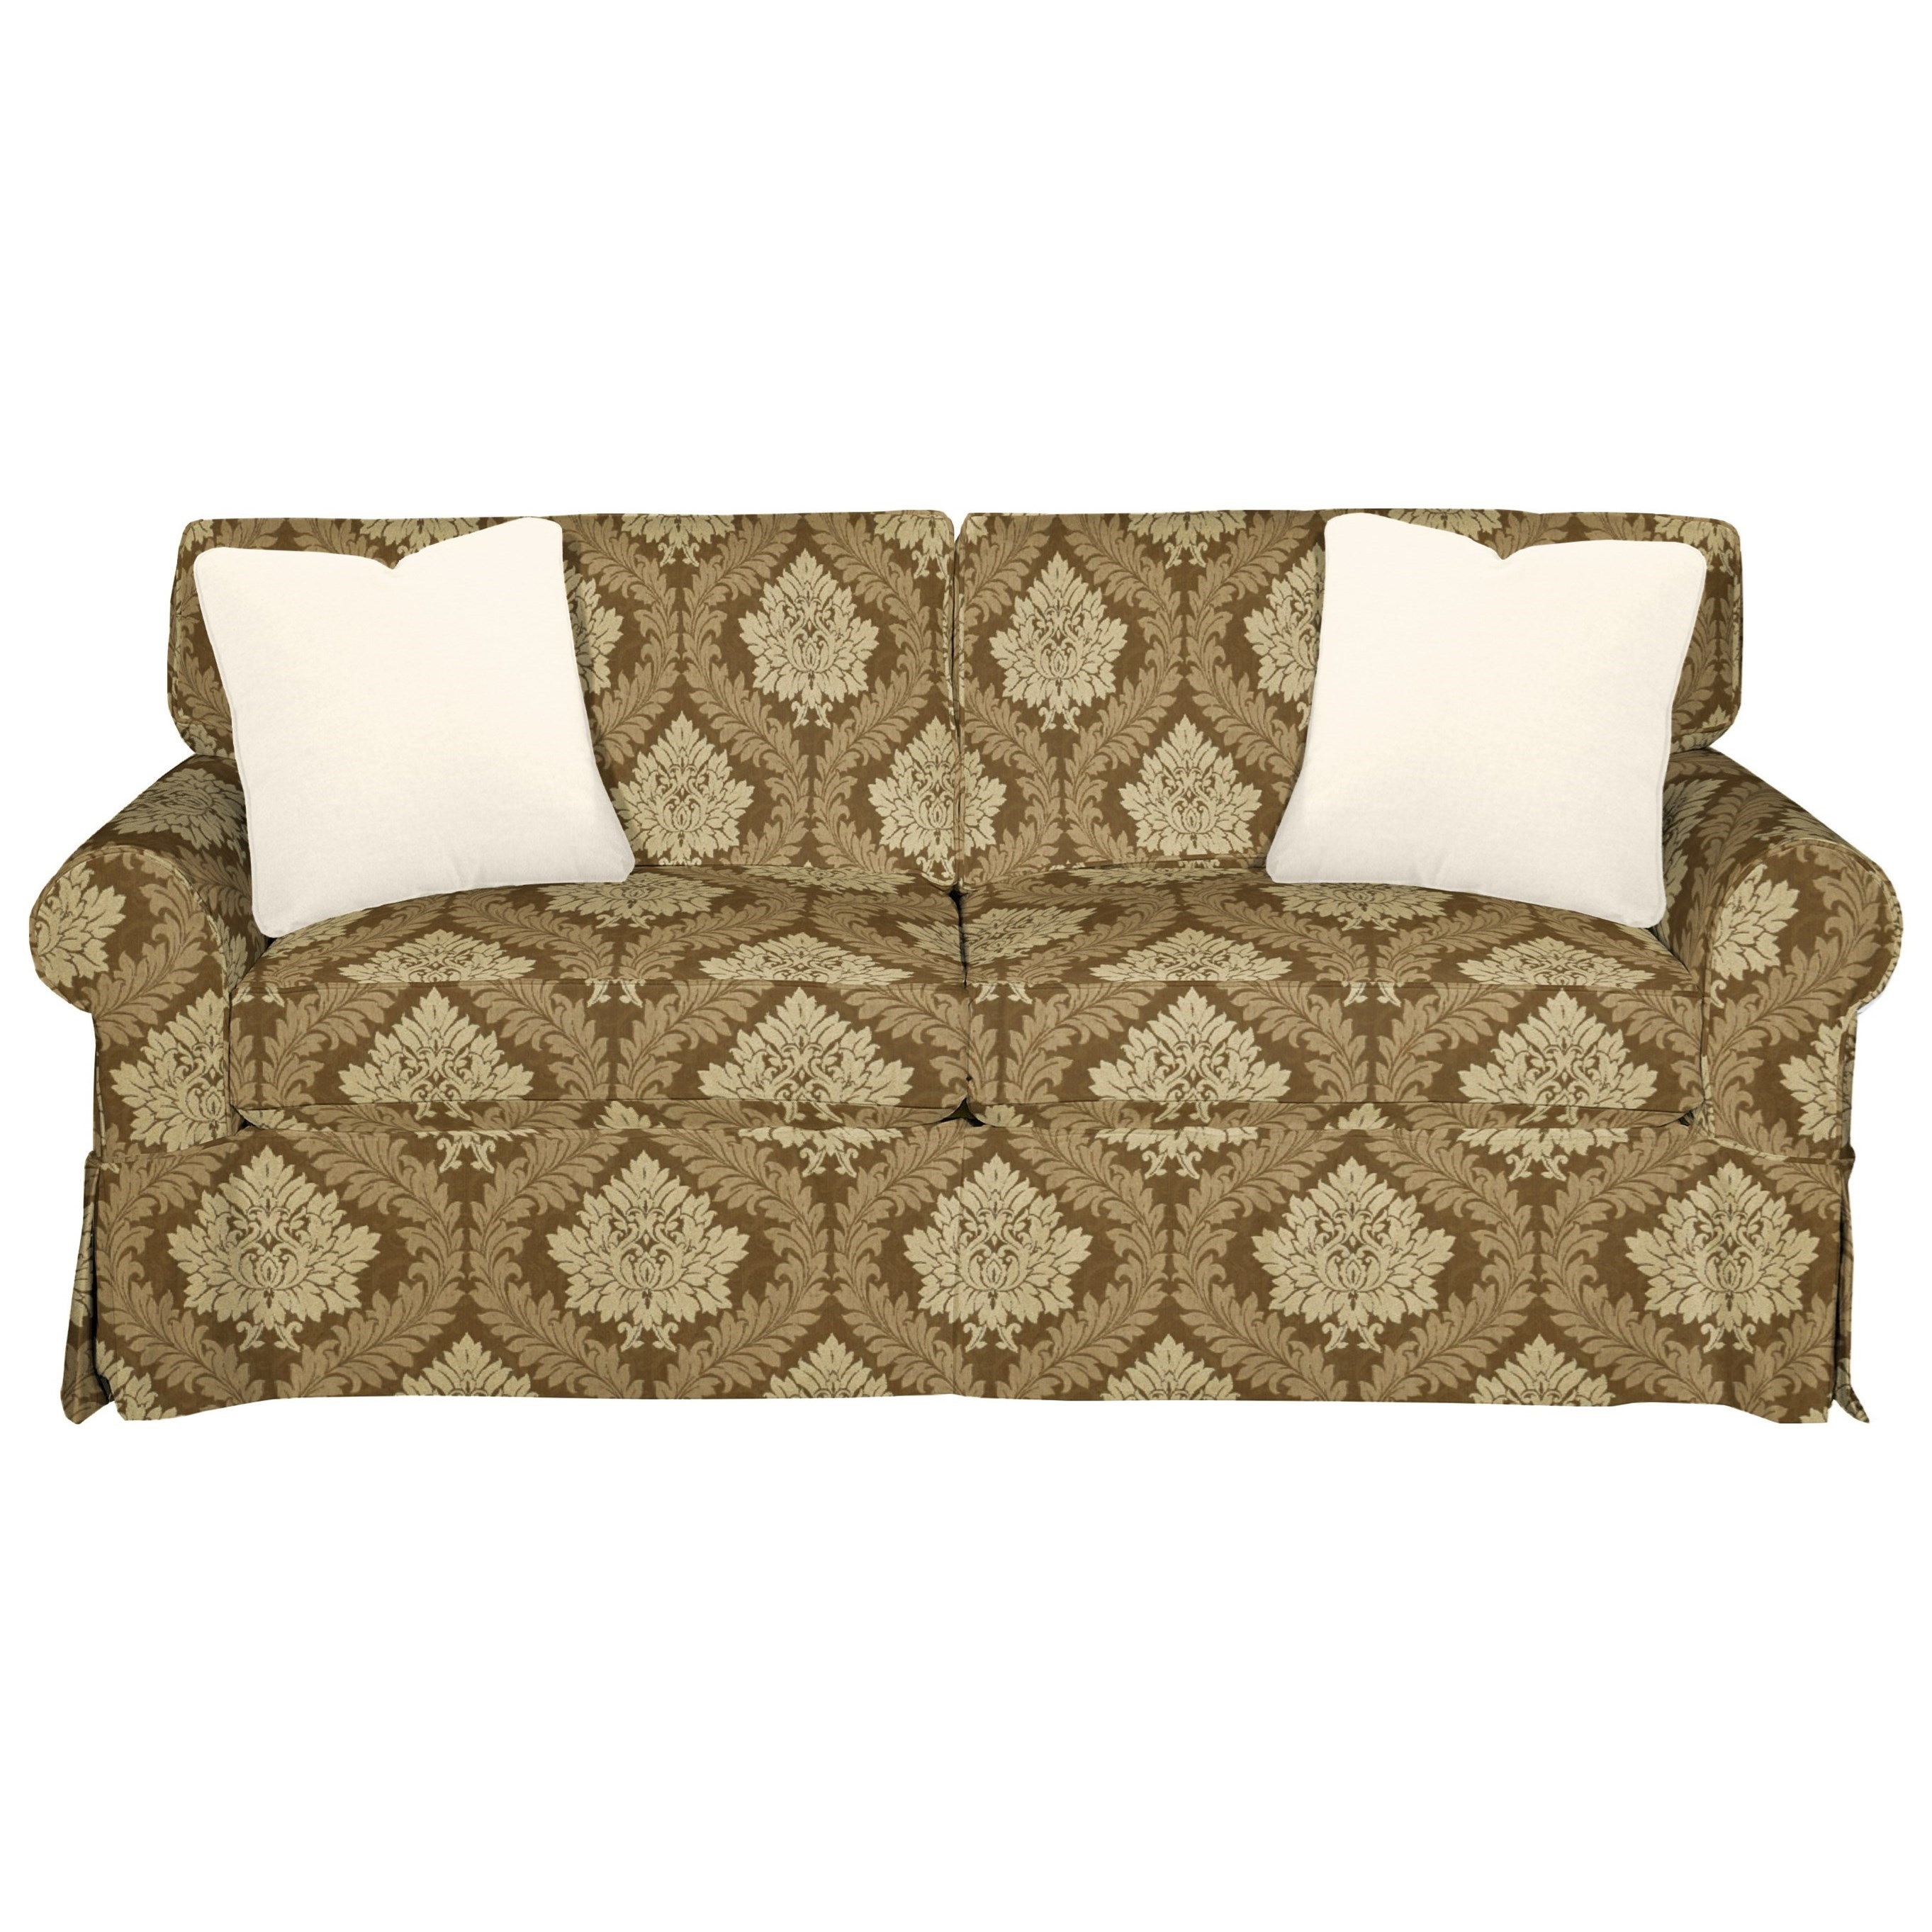 9228 Sleeper Sofa w/ Innerspring Mattress by Hickory Craft at Godby Home Furnishings